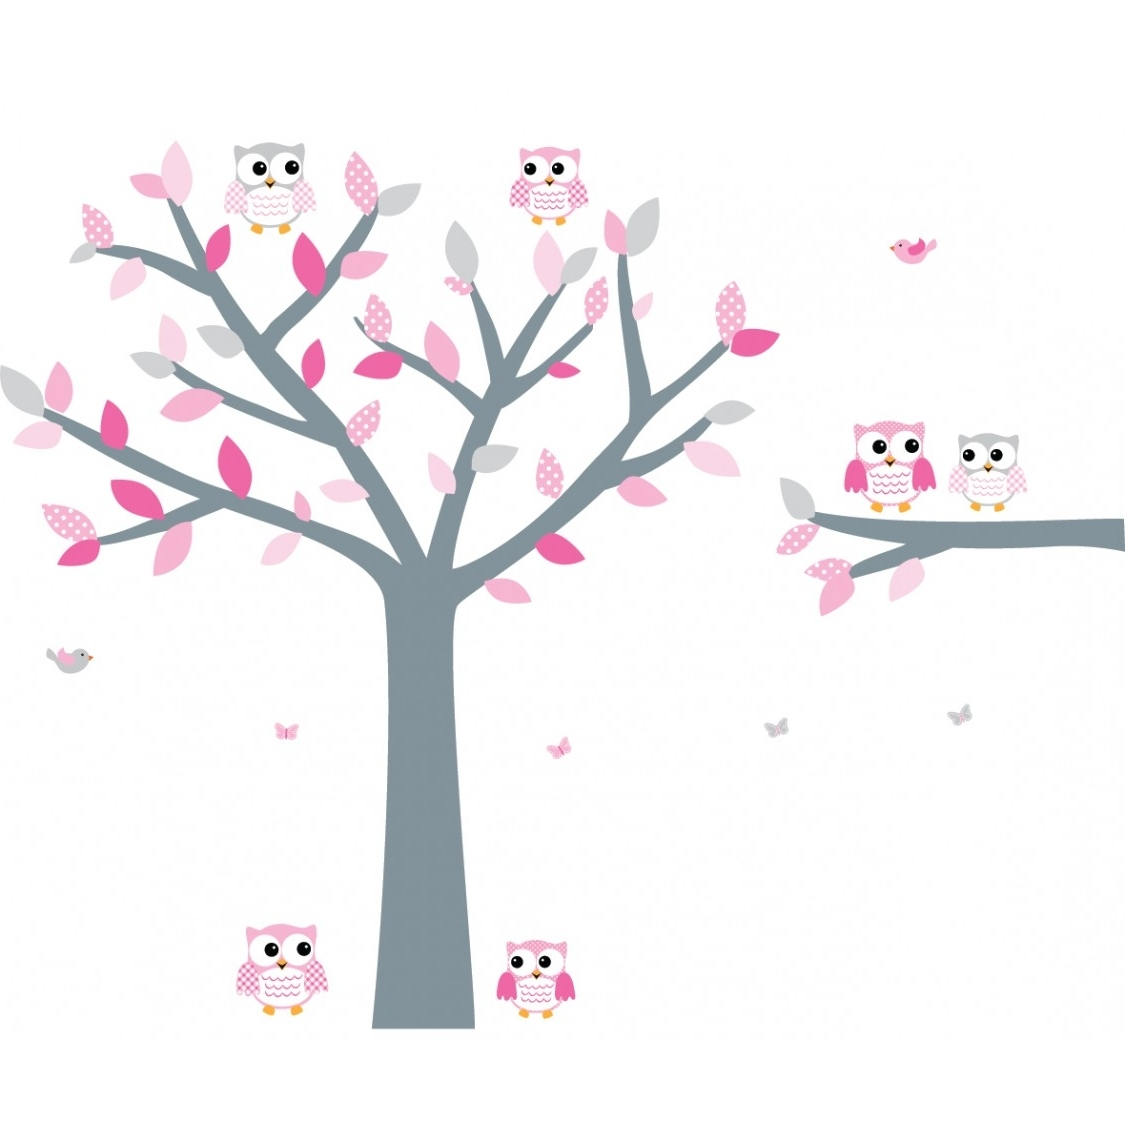 Pink Wall Art Intended For 2017 Pink And Gray Owl Wall Decor With Large Tree Decal For Girls (View 12 of 15)